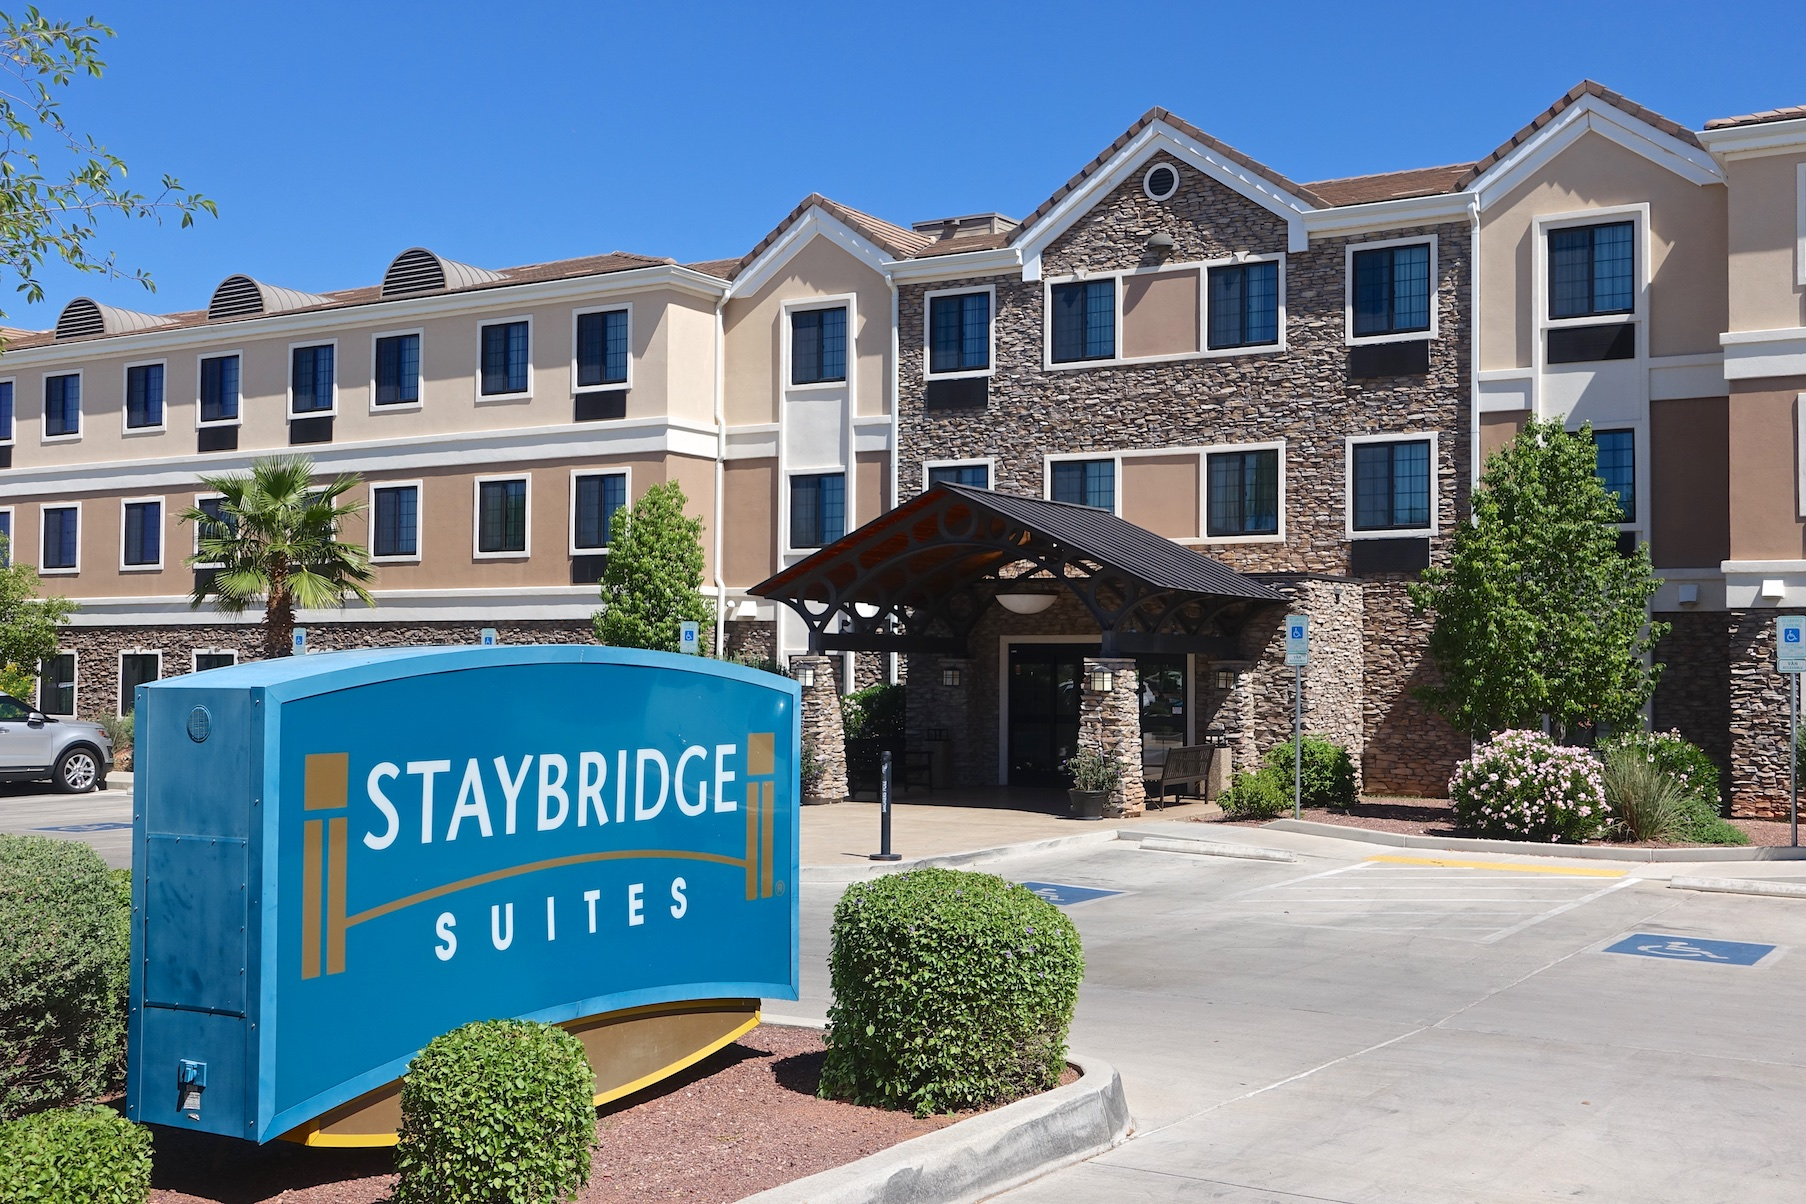 Staybridge Suites in Tucson